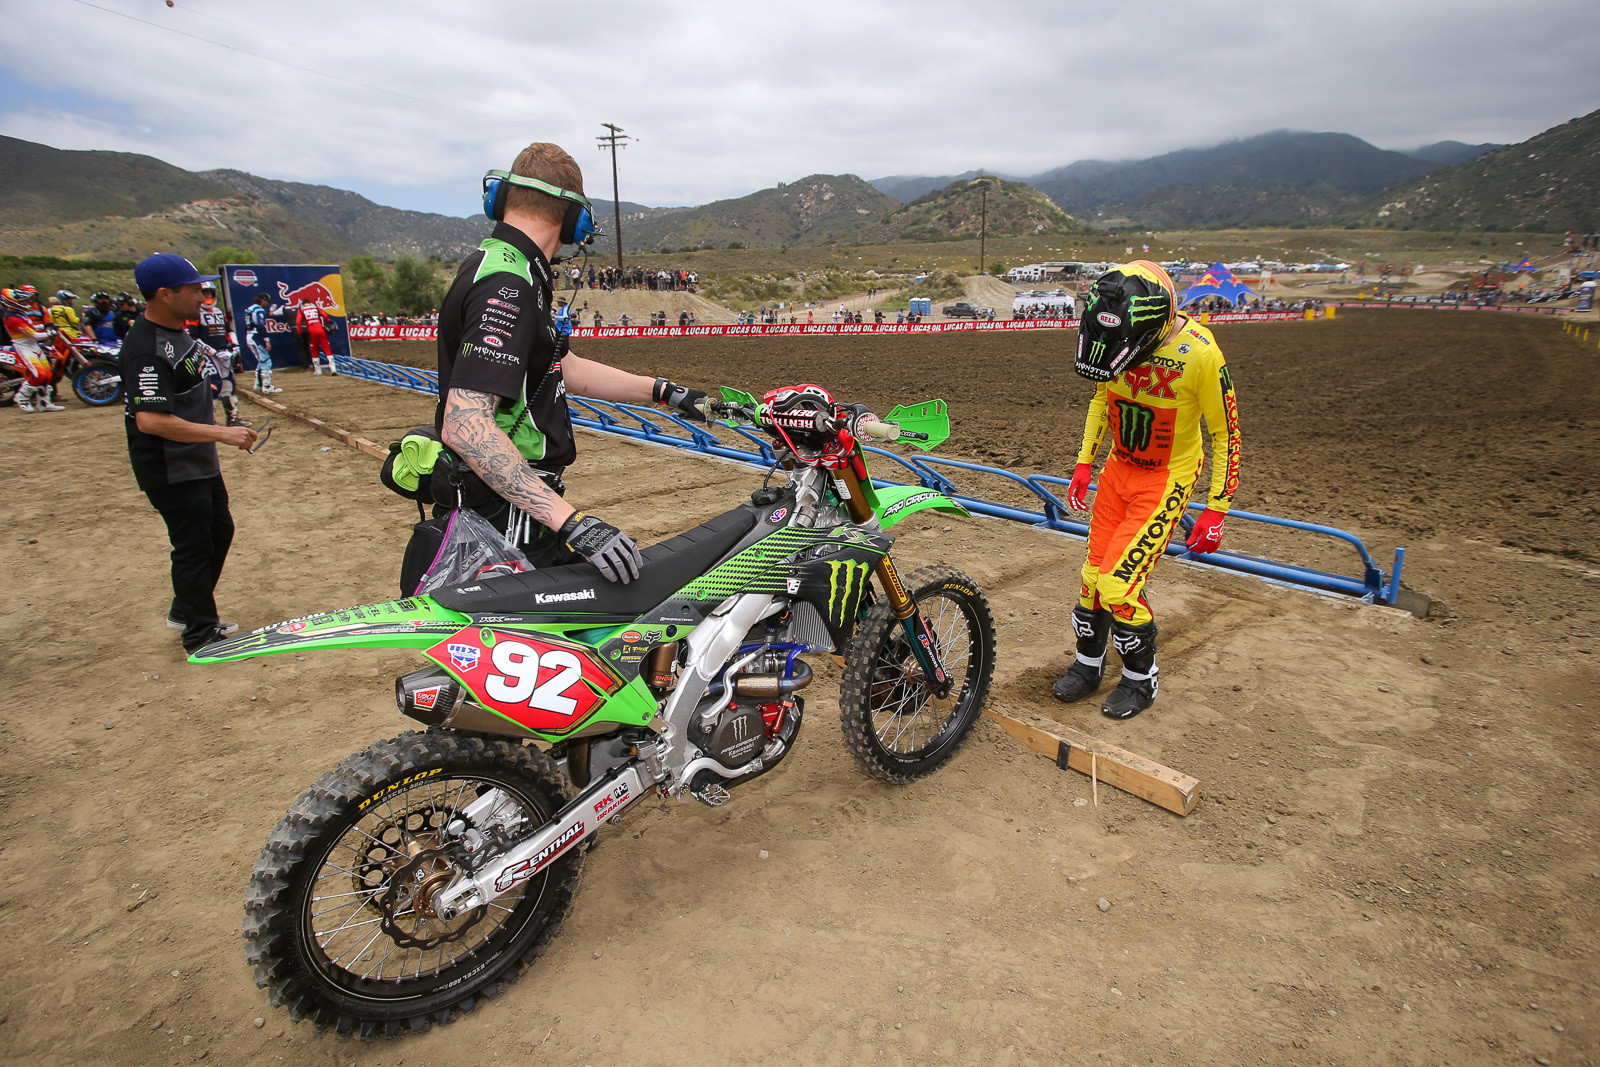 You rarely see riders pick the far outside gate. But Adam Cianciarulo had done his homework, watching everything from the California Classic amateur races to the 125 All-Star action before he went to pick his gate. He opted for the far outside...the same area that Ryan Villopoto had taken for his holeshot in the 125 race. Unfortunately, it didn't work out as well for Adam.